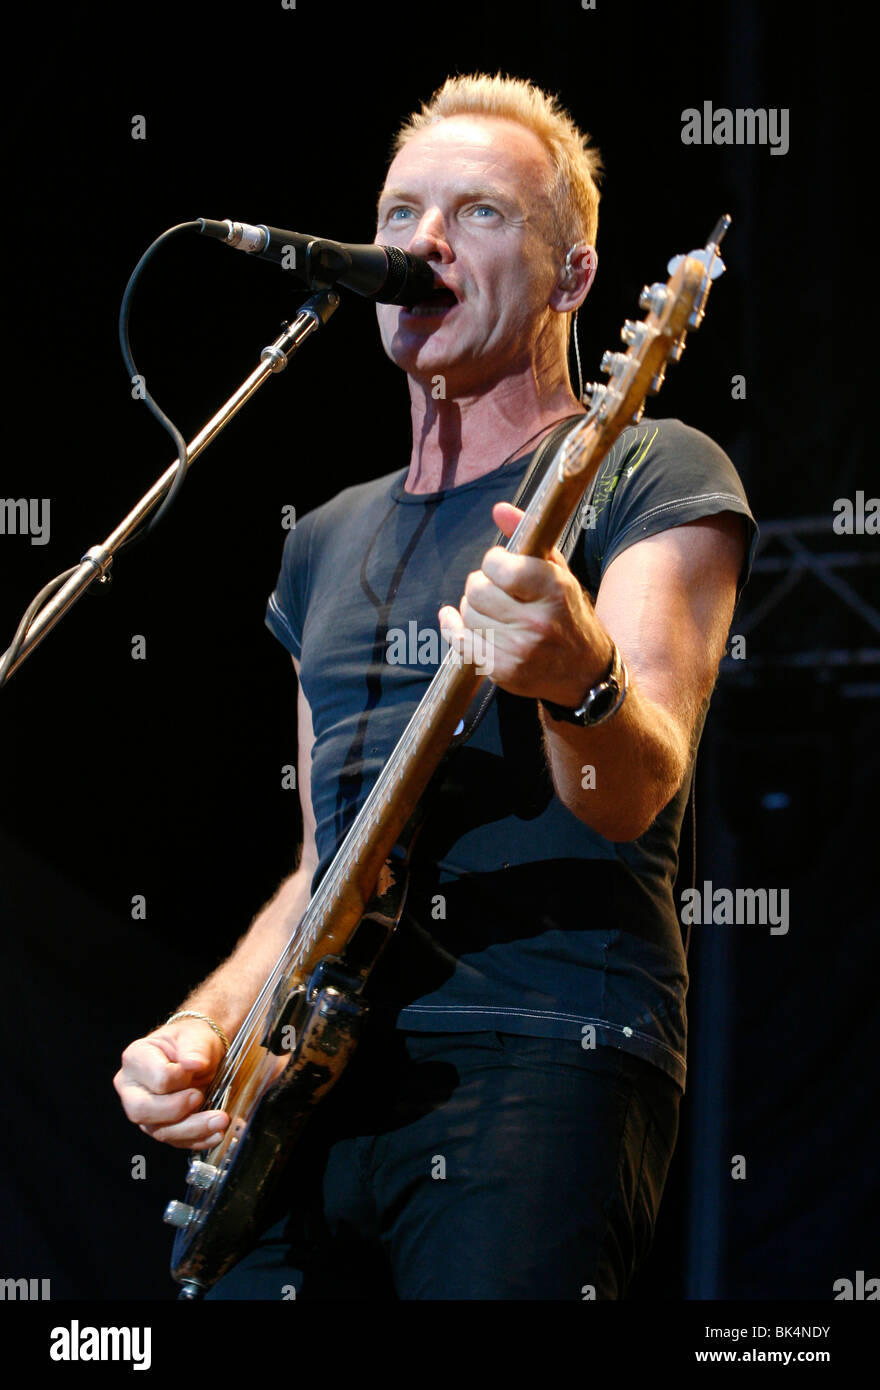 Sting of The Police performs in concert. - Stock Image